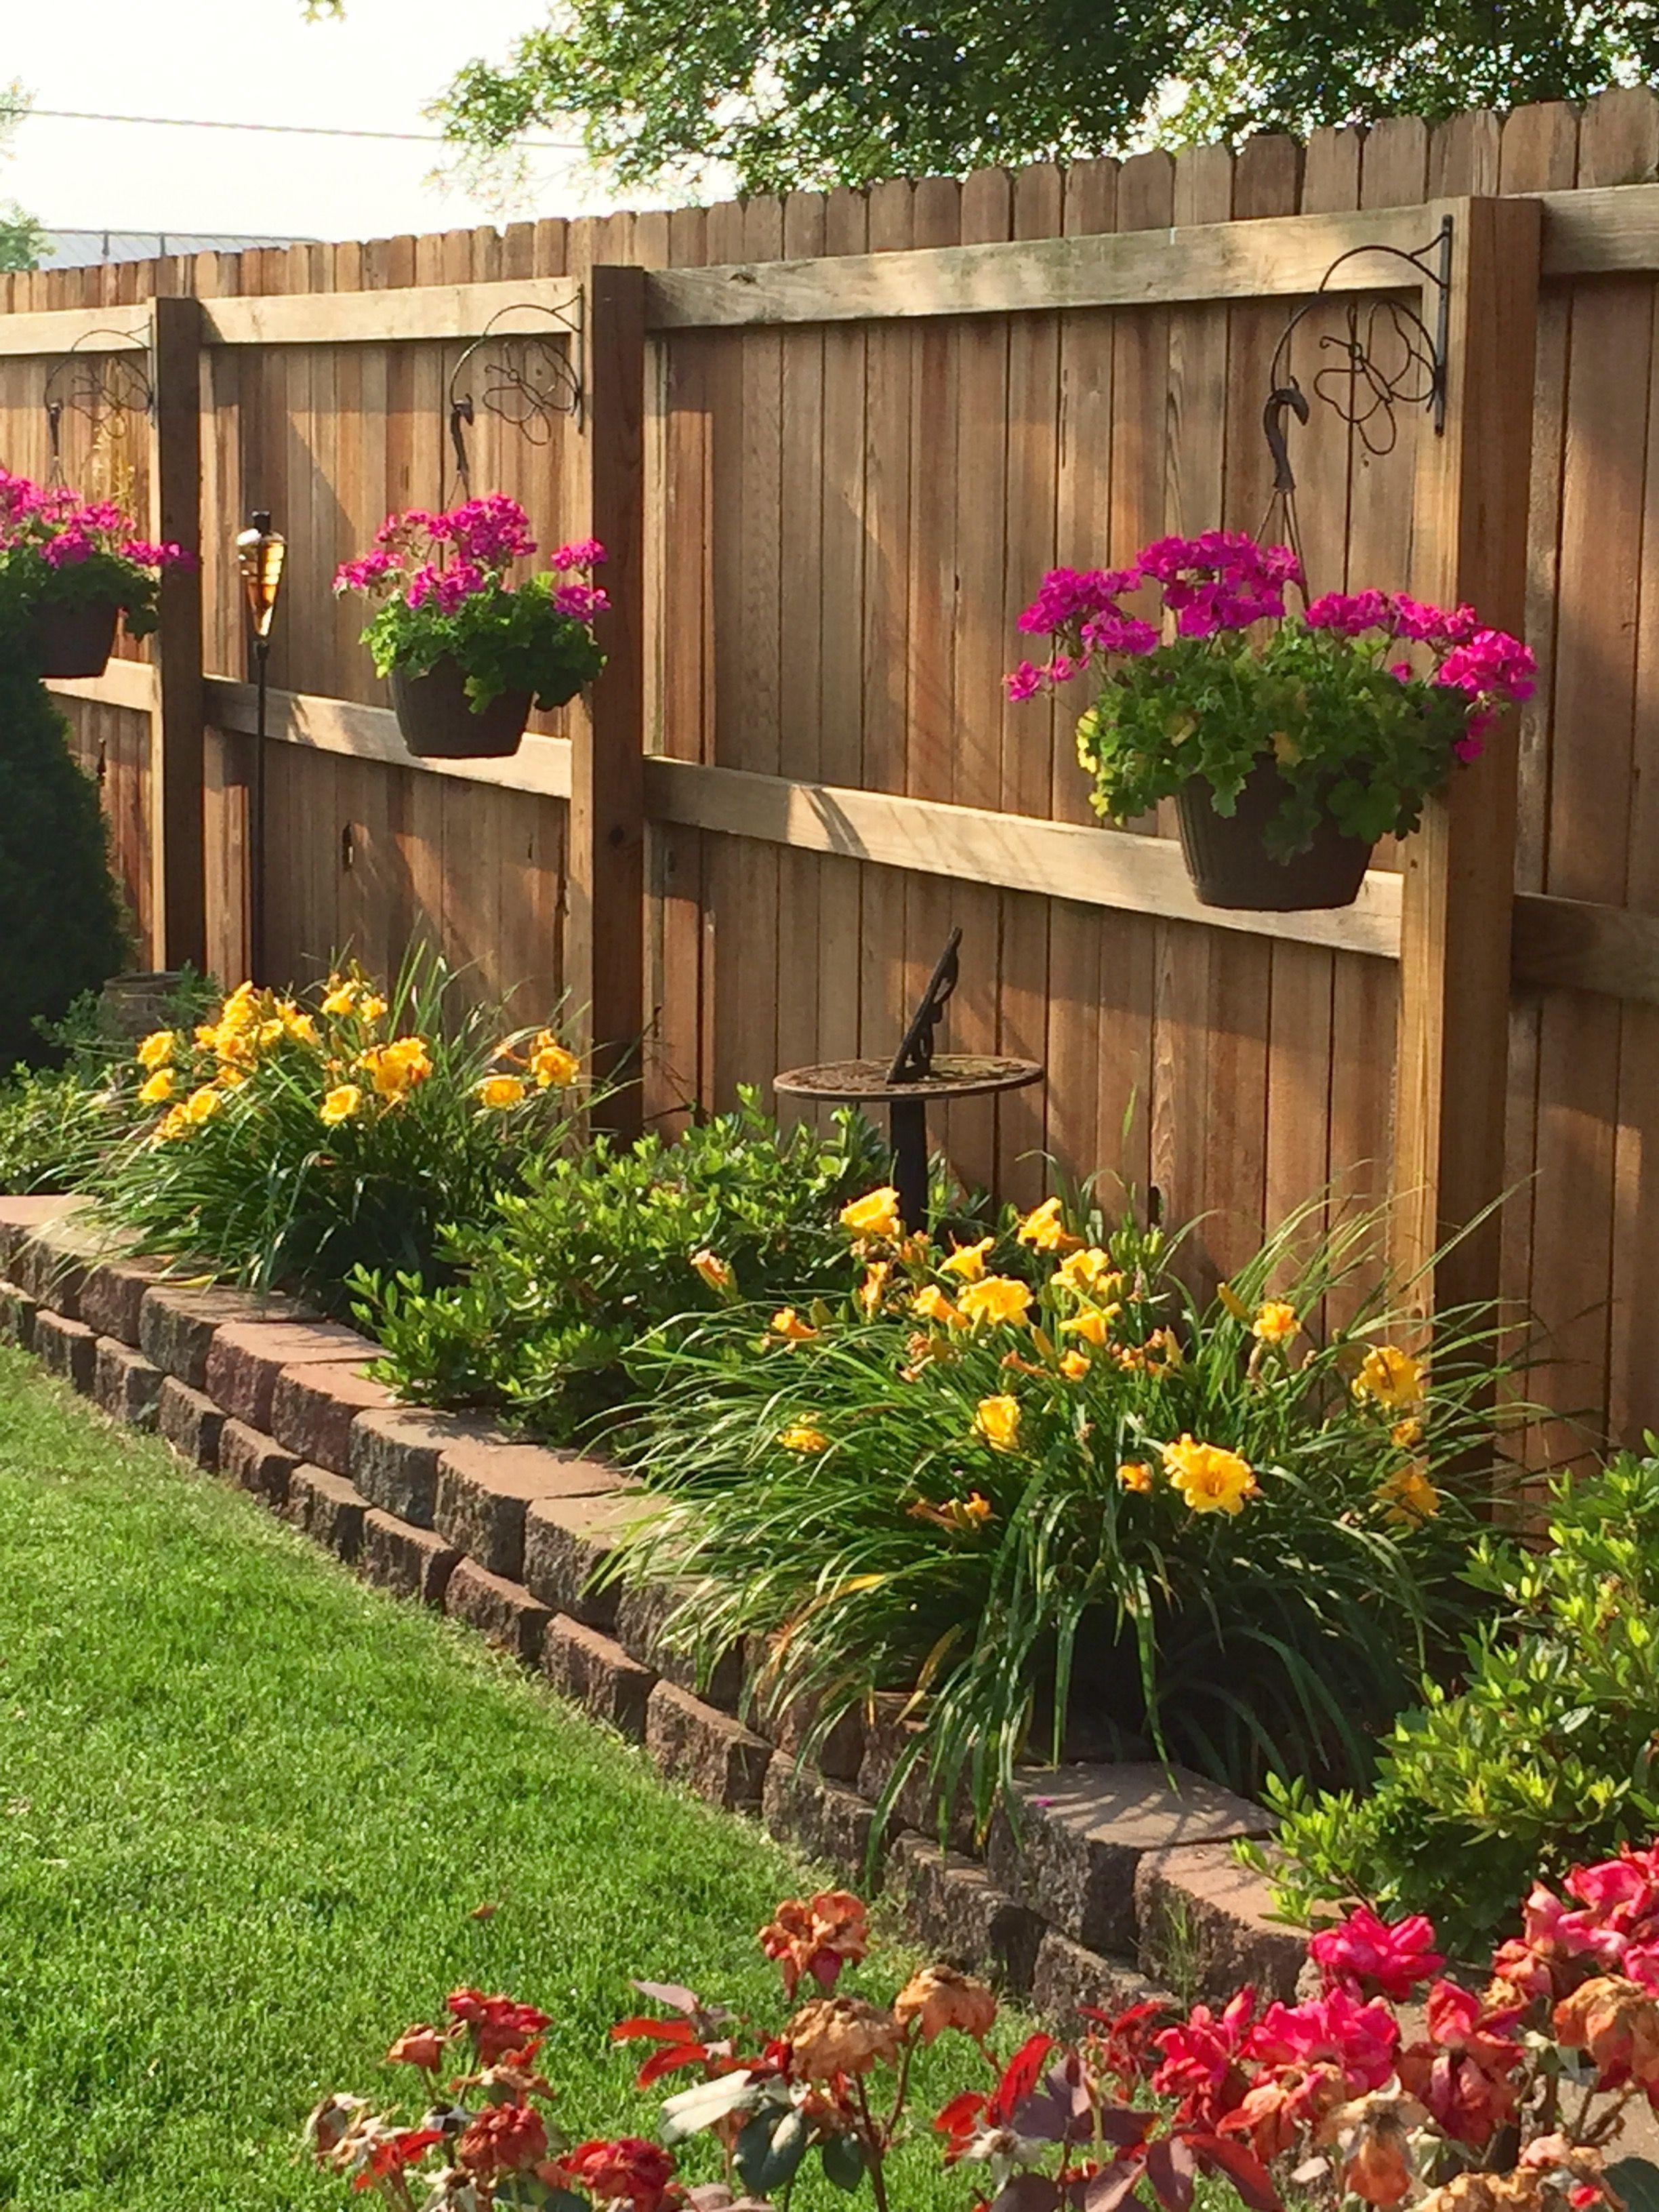 All about backyard landscaping ideas on a budget small - Pool ideas on a budget ...